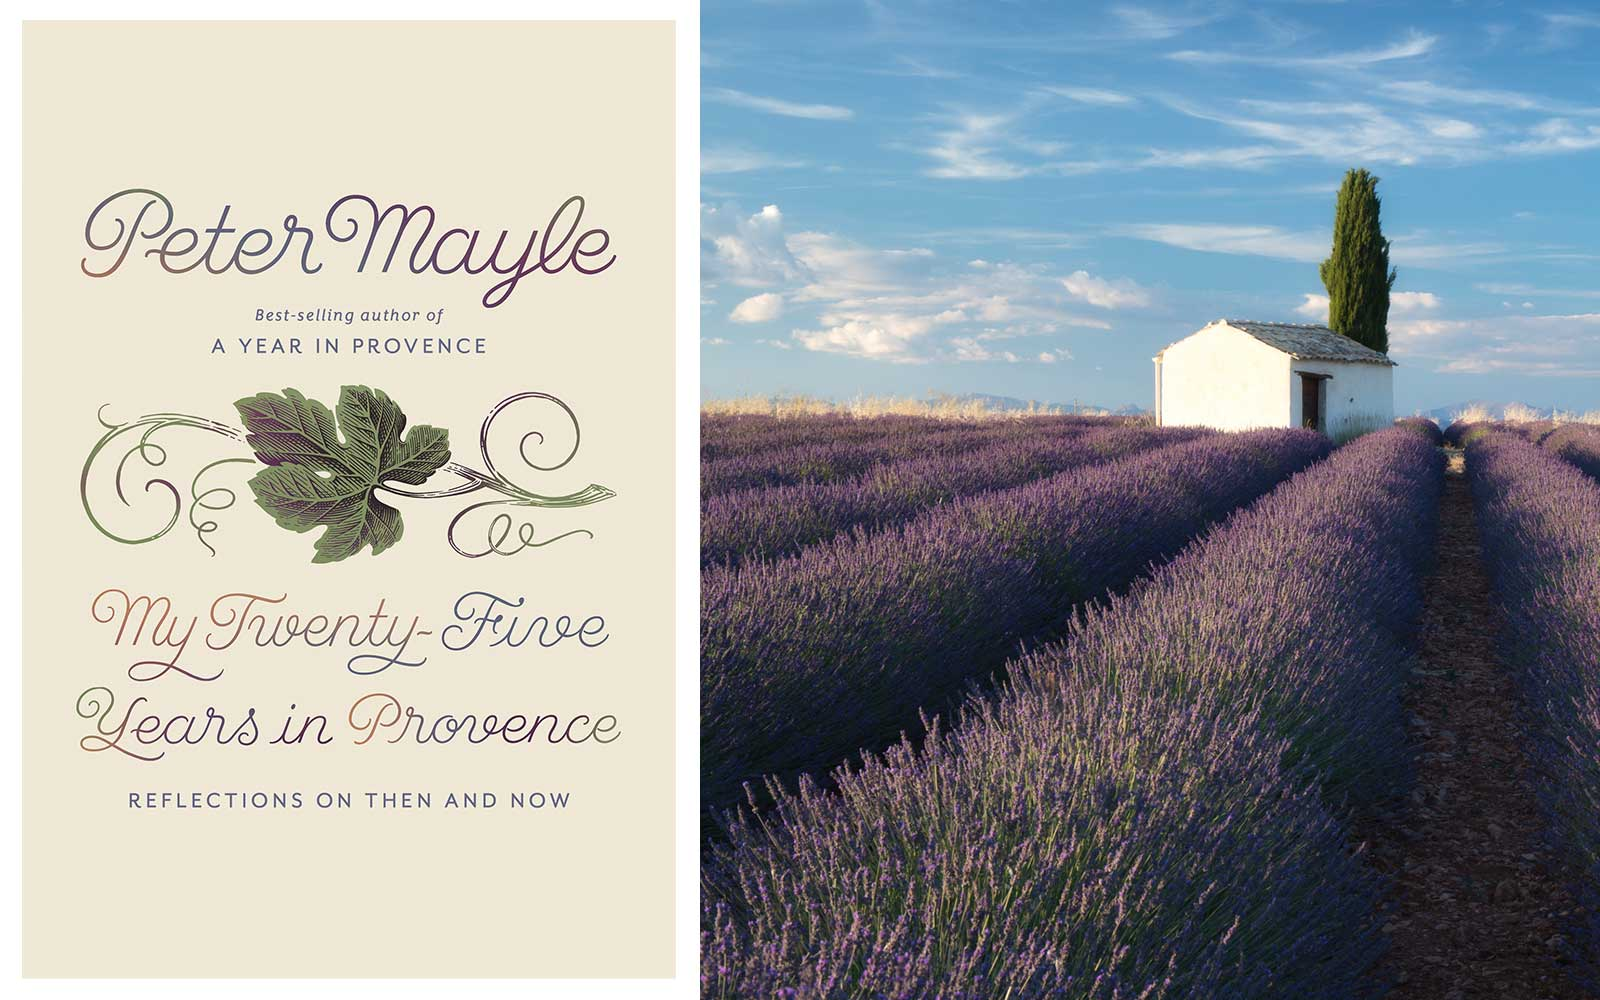 'A Year in Provence' Author's Final Book Is Your Passport to the South of France